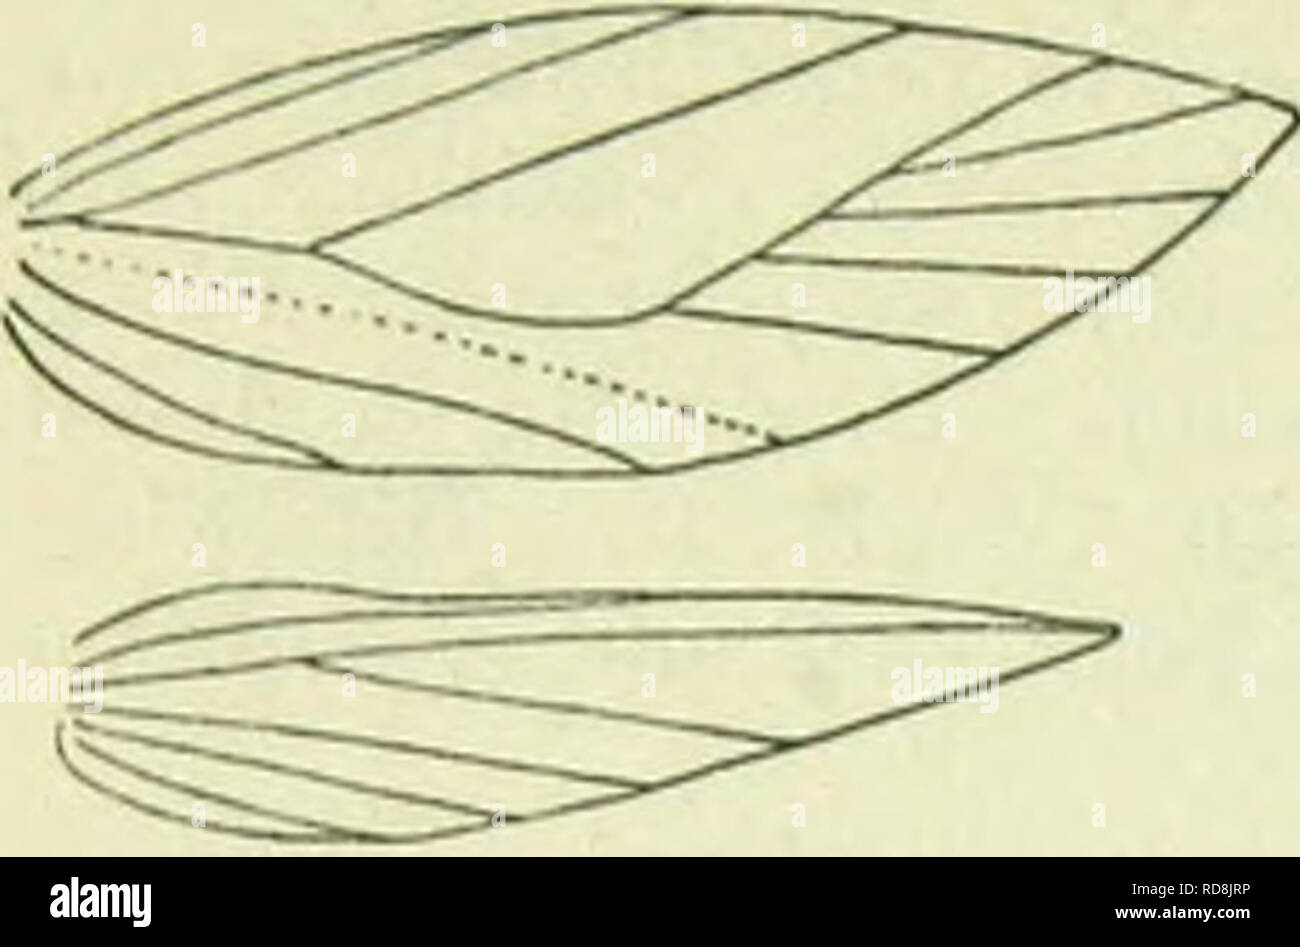 . A handbook of British lepidoptera. Lepidoptera. TINEINA [SOOLIAUI.A. Nouration of Smlinula quadr mamUella. out of 8, 9 absent. Hindwings over £, lanceolate, cilia 2£ ; cell open between 2 and 6, 3-5 absent. Only the one species is known ; it must closely approach the common ancestral form of the two preceding genera. Its own origin is obscure, but may probably be referred to a very early form of the family, allied to Tinea and preserving much of the ancestral structure. Imago with forcwings lanceolate. 1. S. quadrimaculella, Boh. 7-9 mm. Head orange, collar ochreous-whitish. Antennal cyecaps - Stock Image